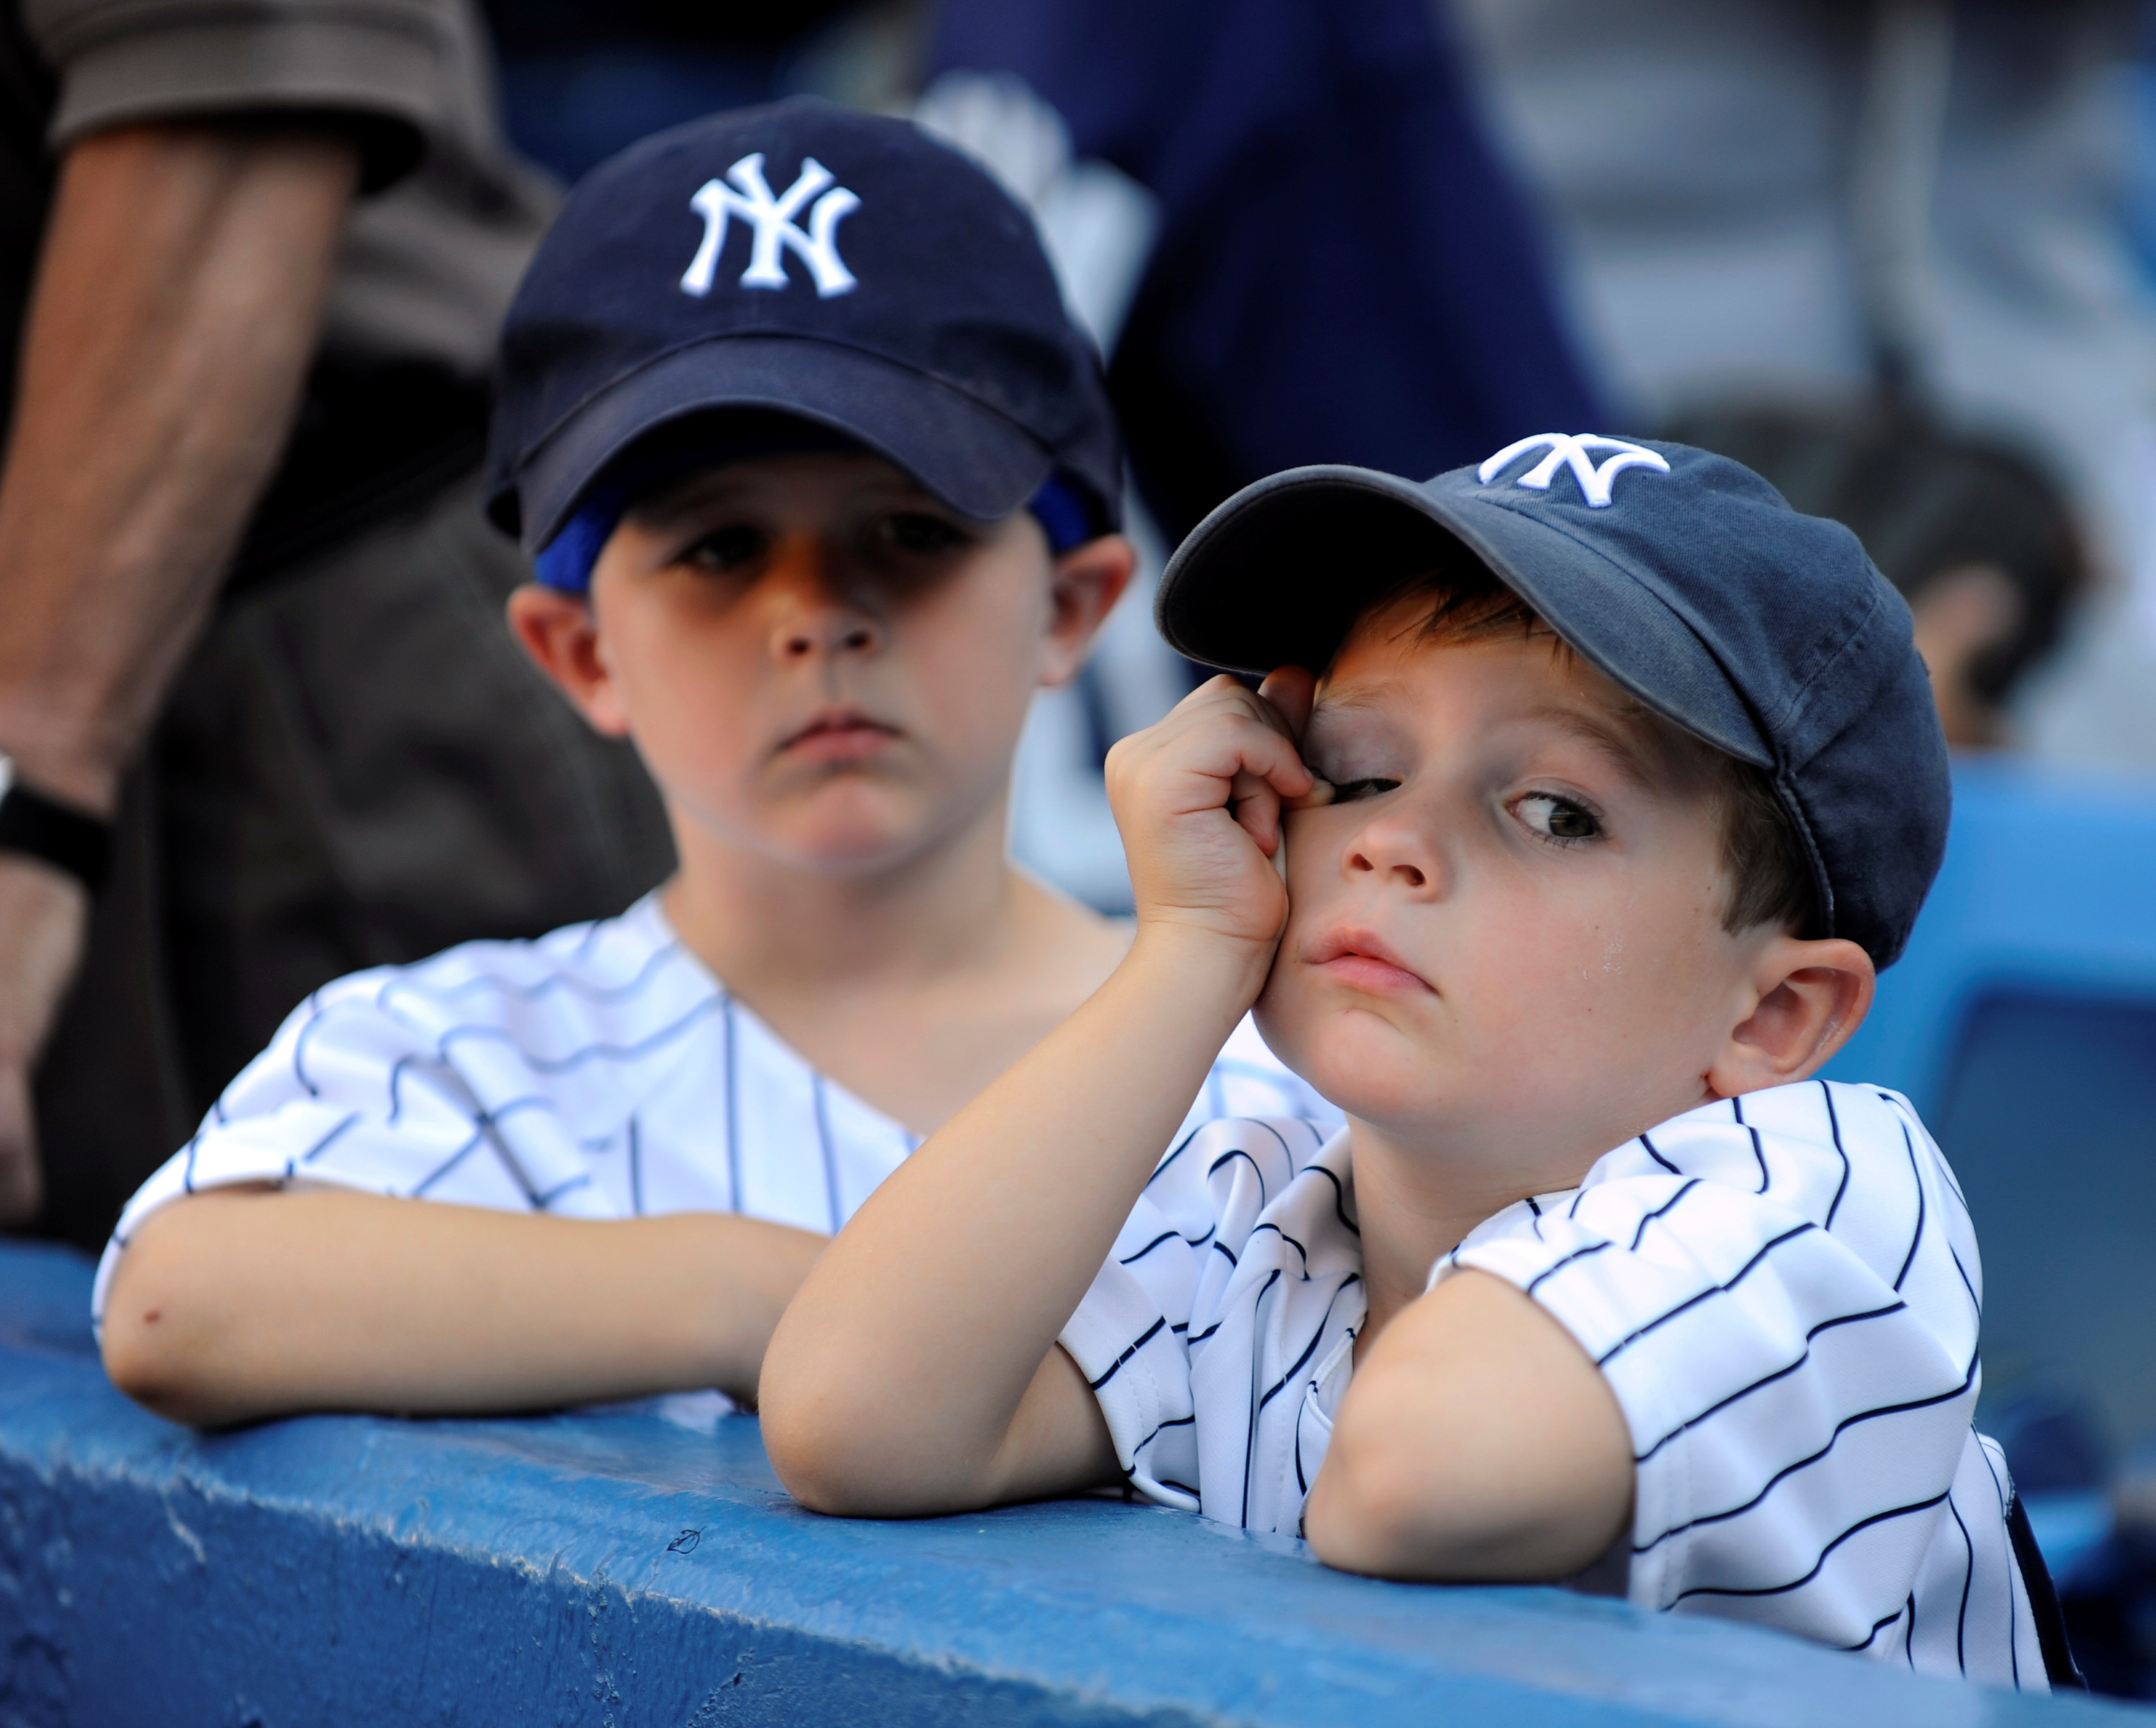 N.Y.Yankees vs Toronto Blue Jays at Yankee Stadium., Yankee fans are unhappy and concerned as they lose another game and the hopes of a post-season slip away.